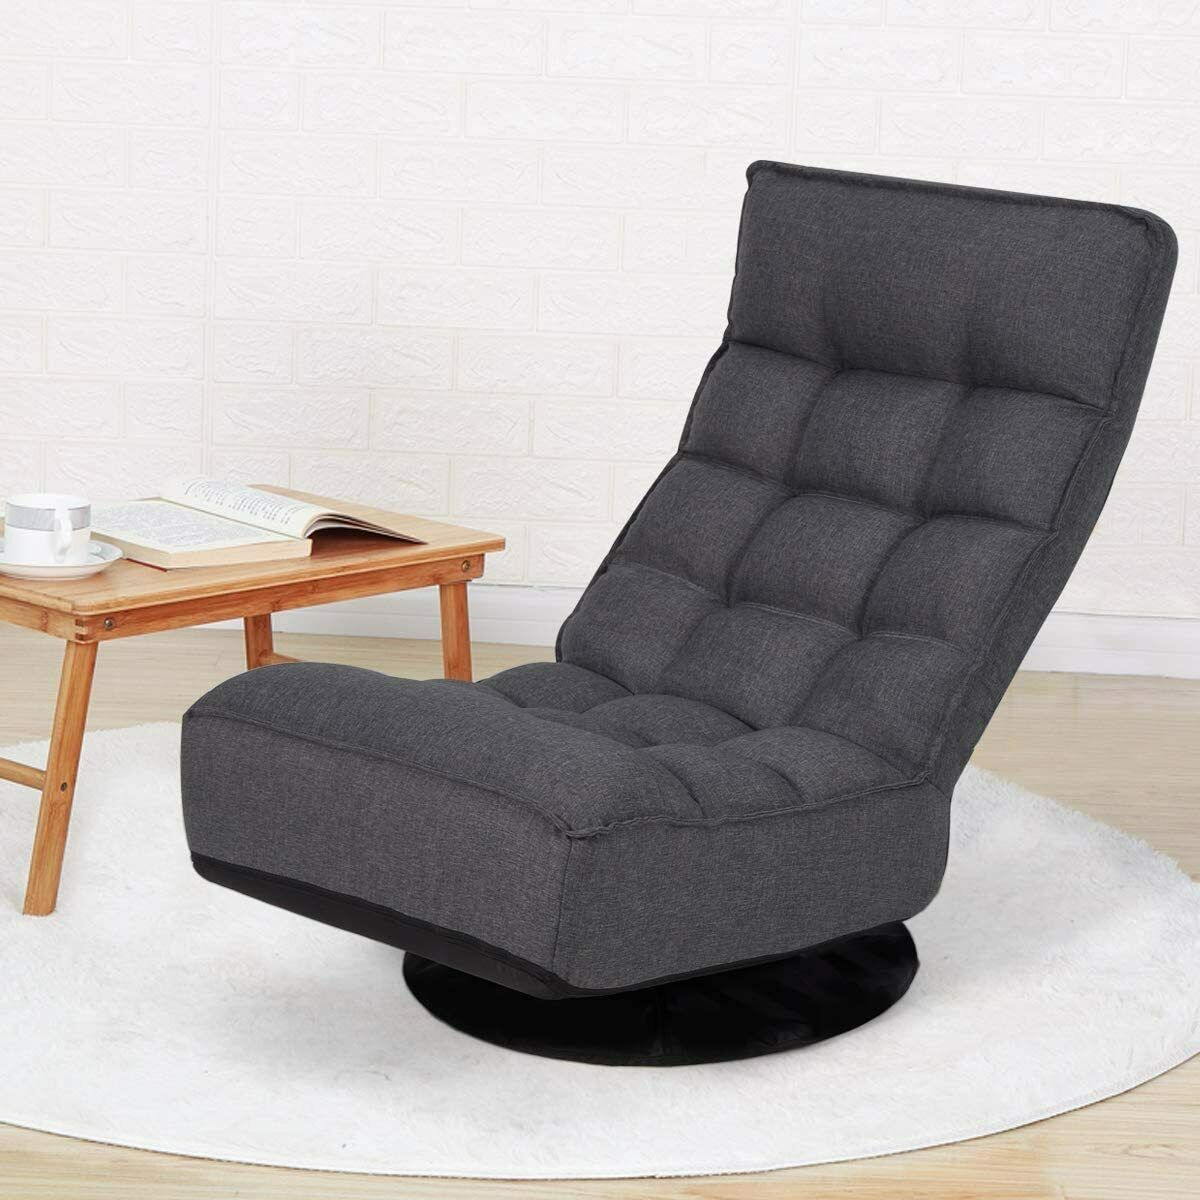 360-Degree Swivel Folding Floor Gaming Chair Adjustable Lazy Sleeper Recliner Chairs